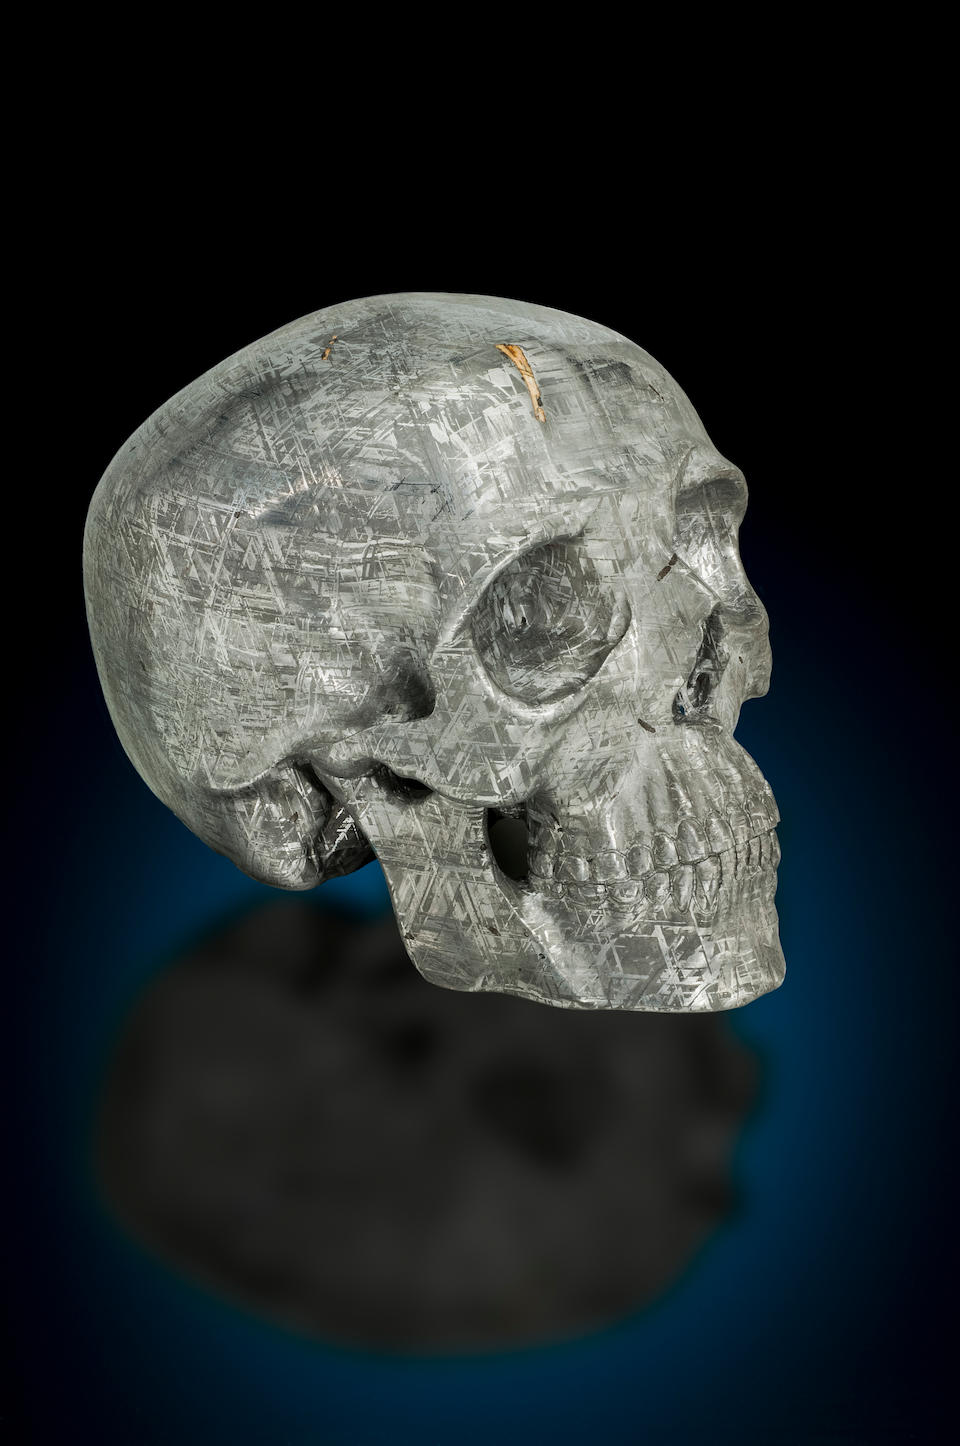 Bonhams Unique Life Sized Skull Form Carving Of A Gibeon Meteorite With Tridymite Inclusion By Lee Downey